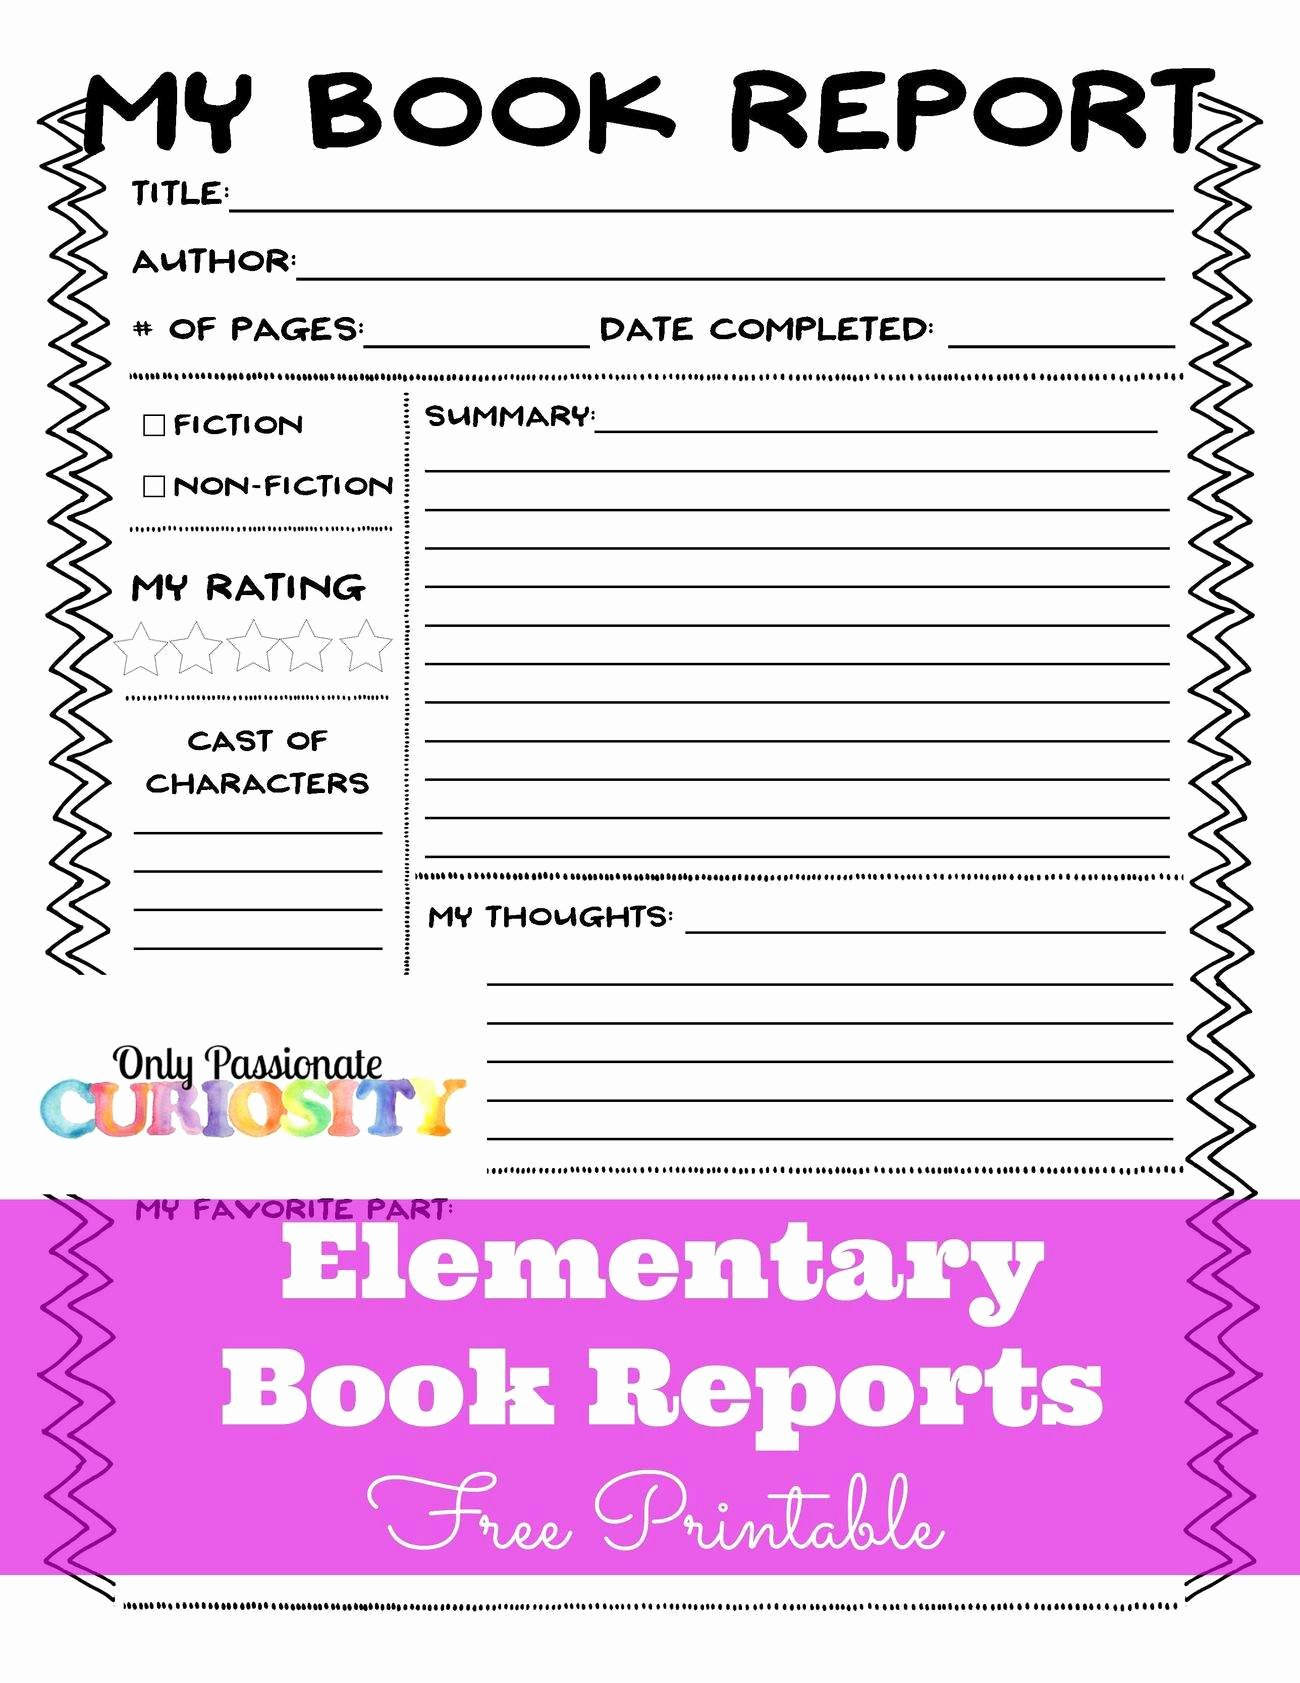 Free Book Report forms Best Of Elementary Book Reports Made Easy Ly Passionate Curiosity